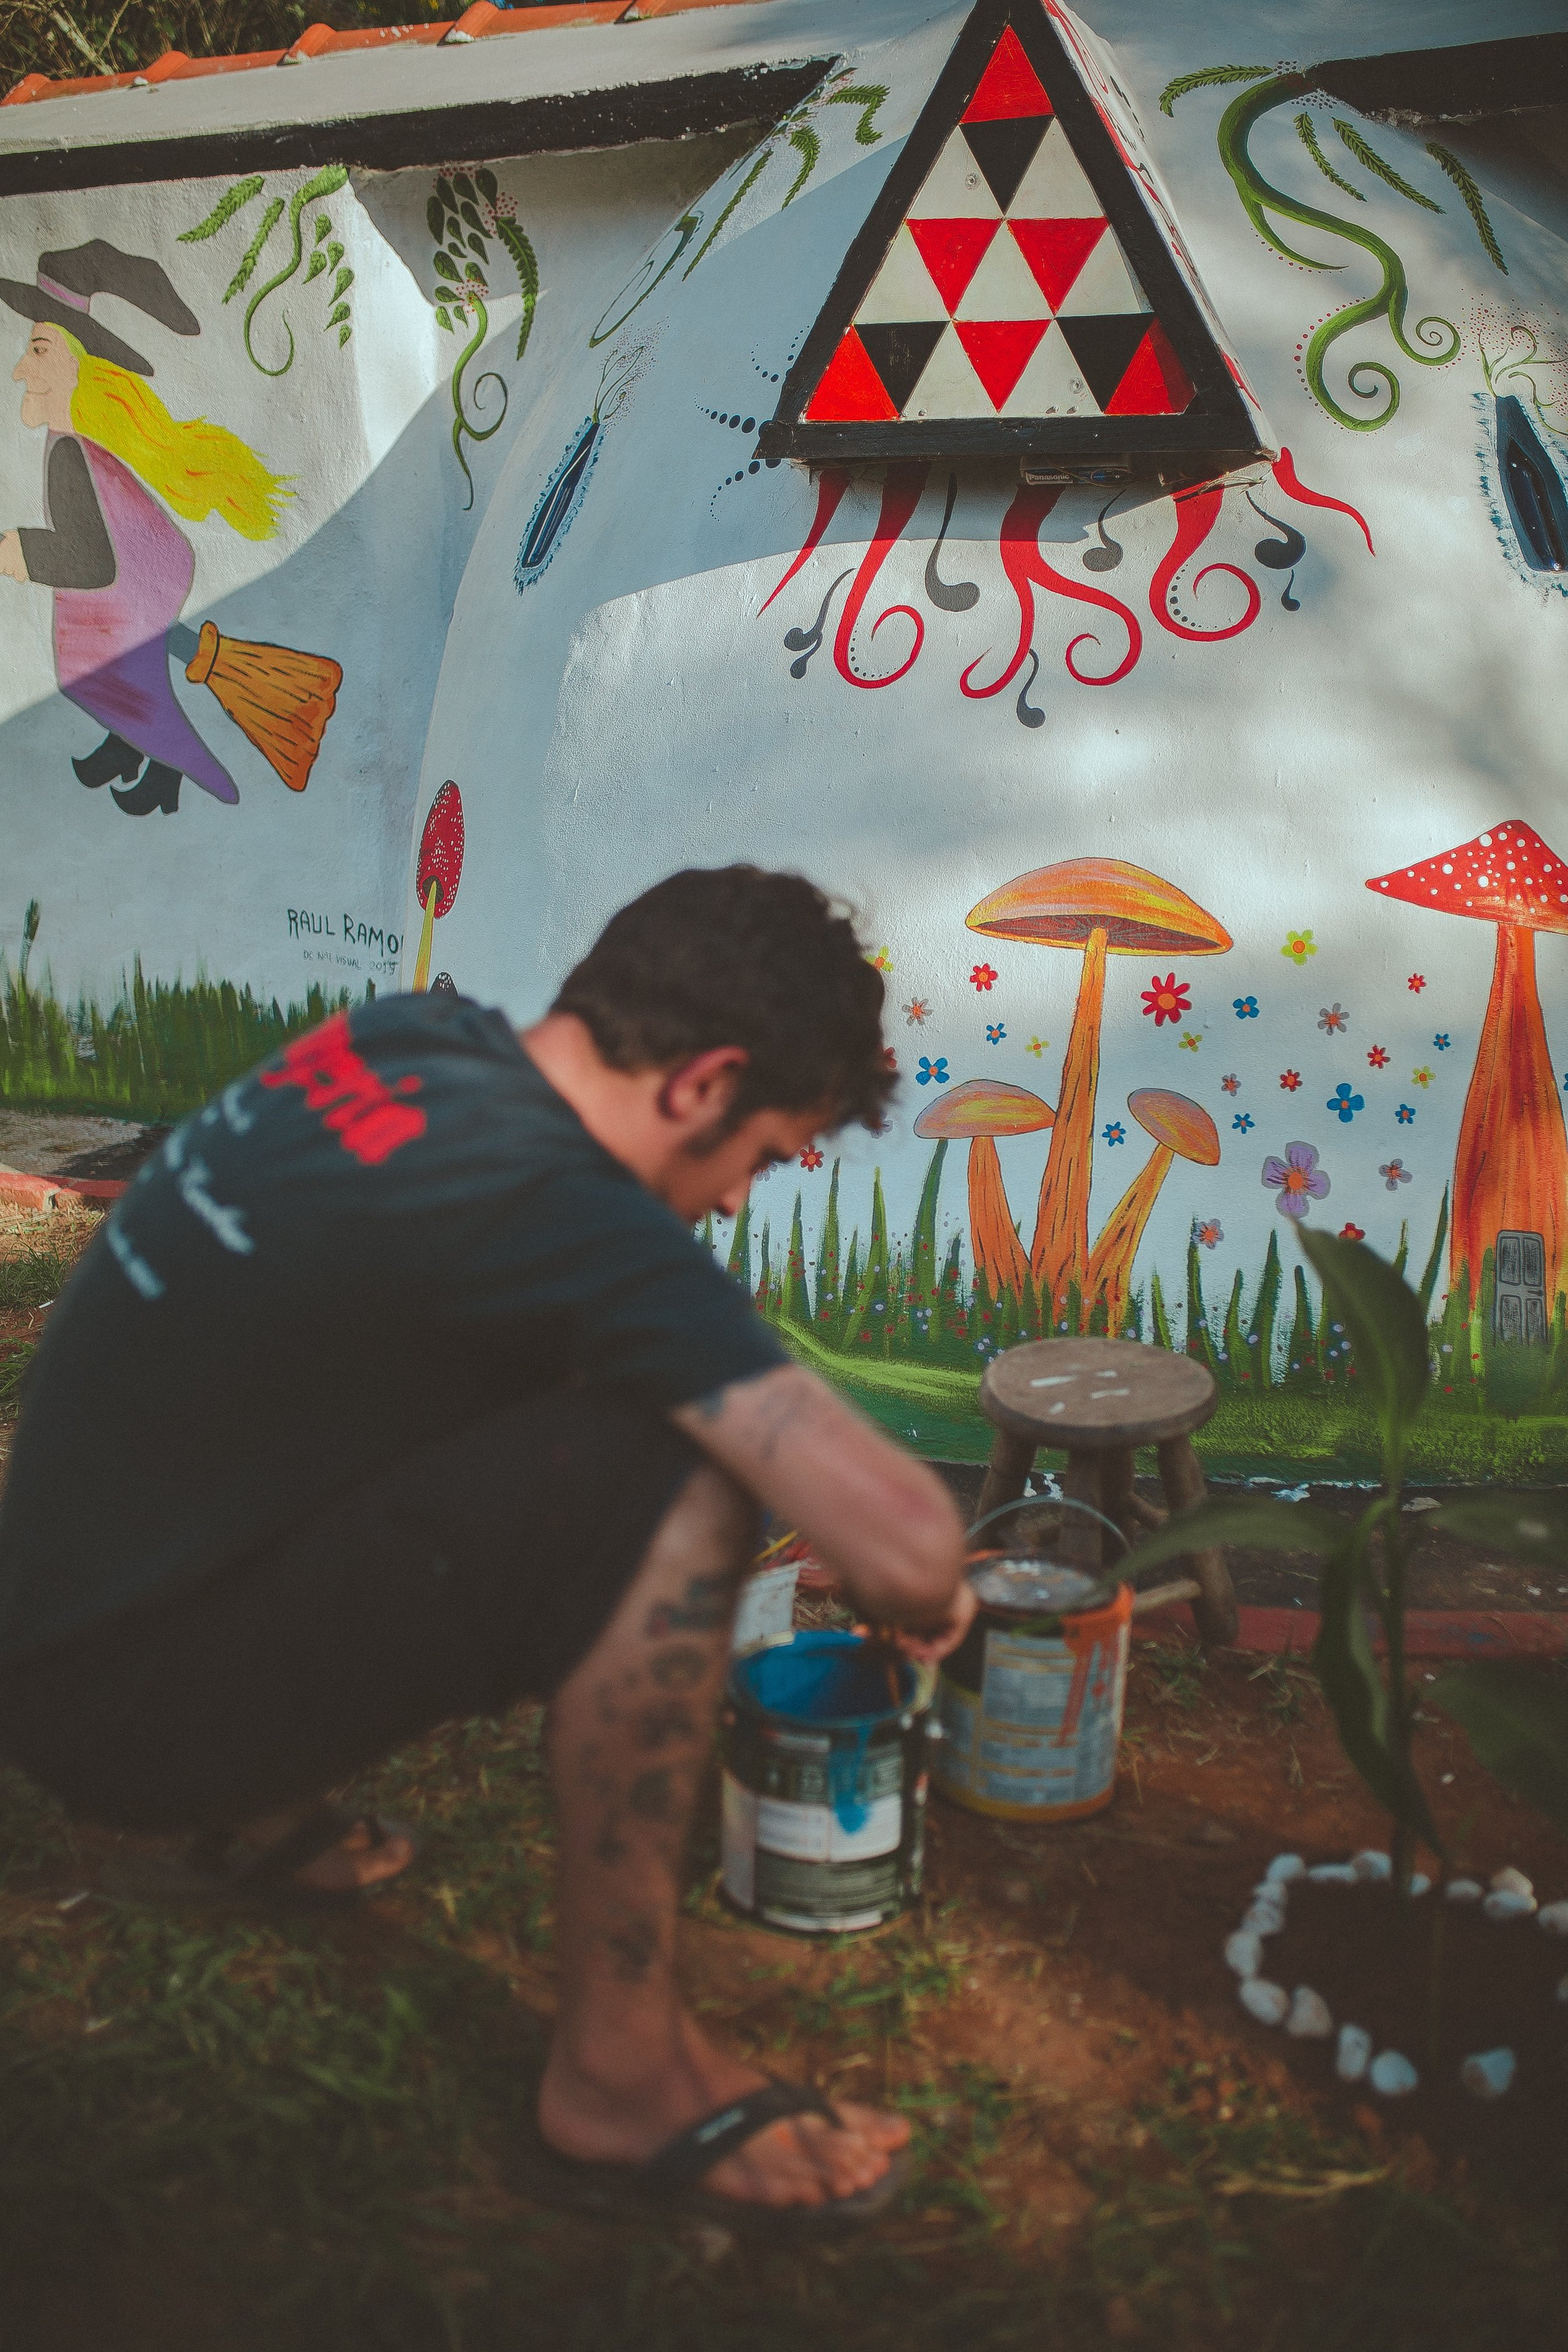 Art festivals are a great way to completely immerse yourself in the culture and process of artwork -